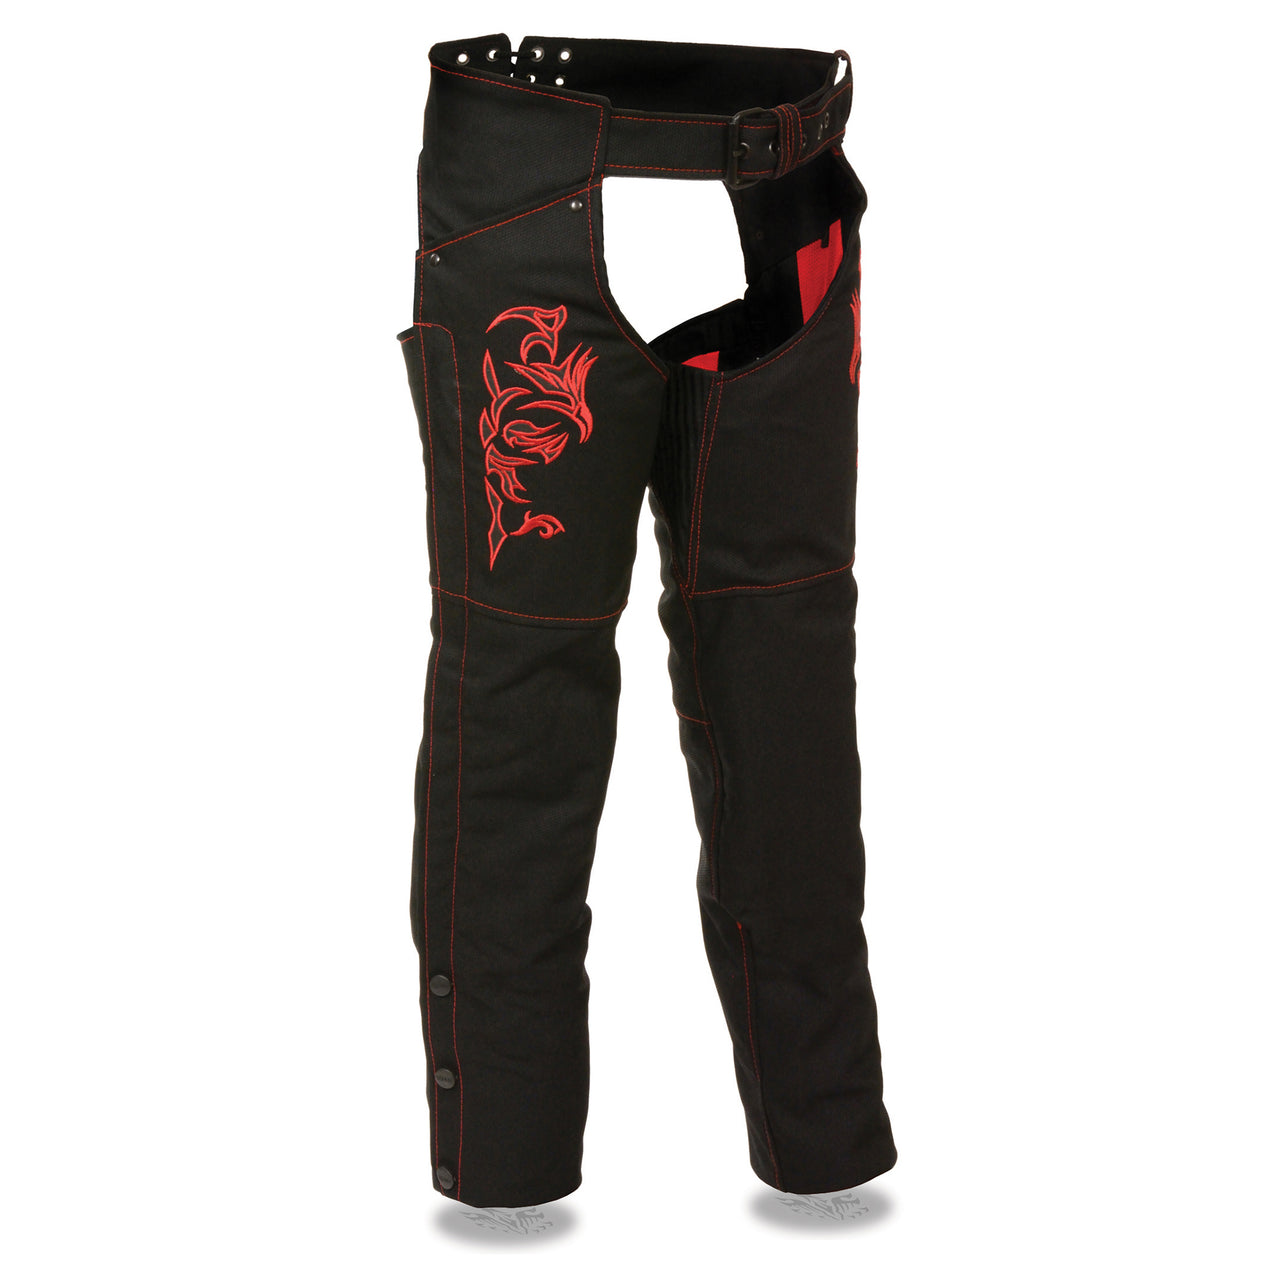 Women's Textile Chap w/ Tribal Embroidery & Reflective Detail - HighwayLeather